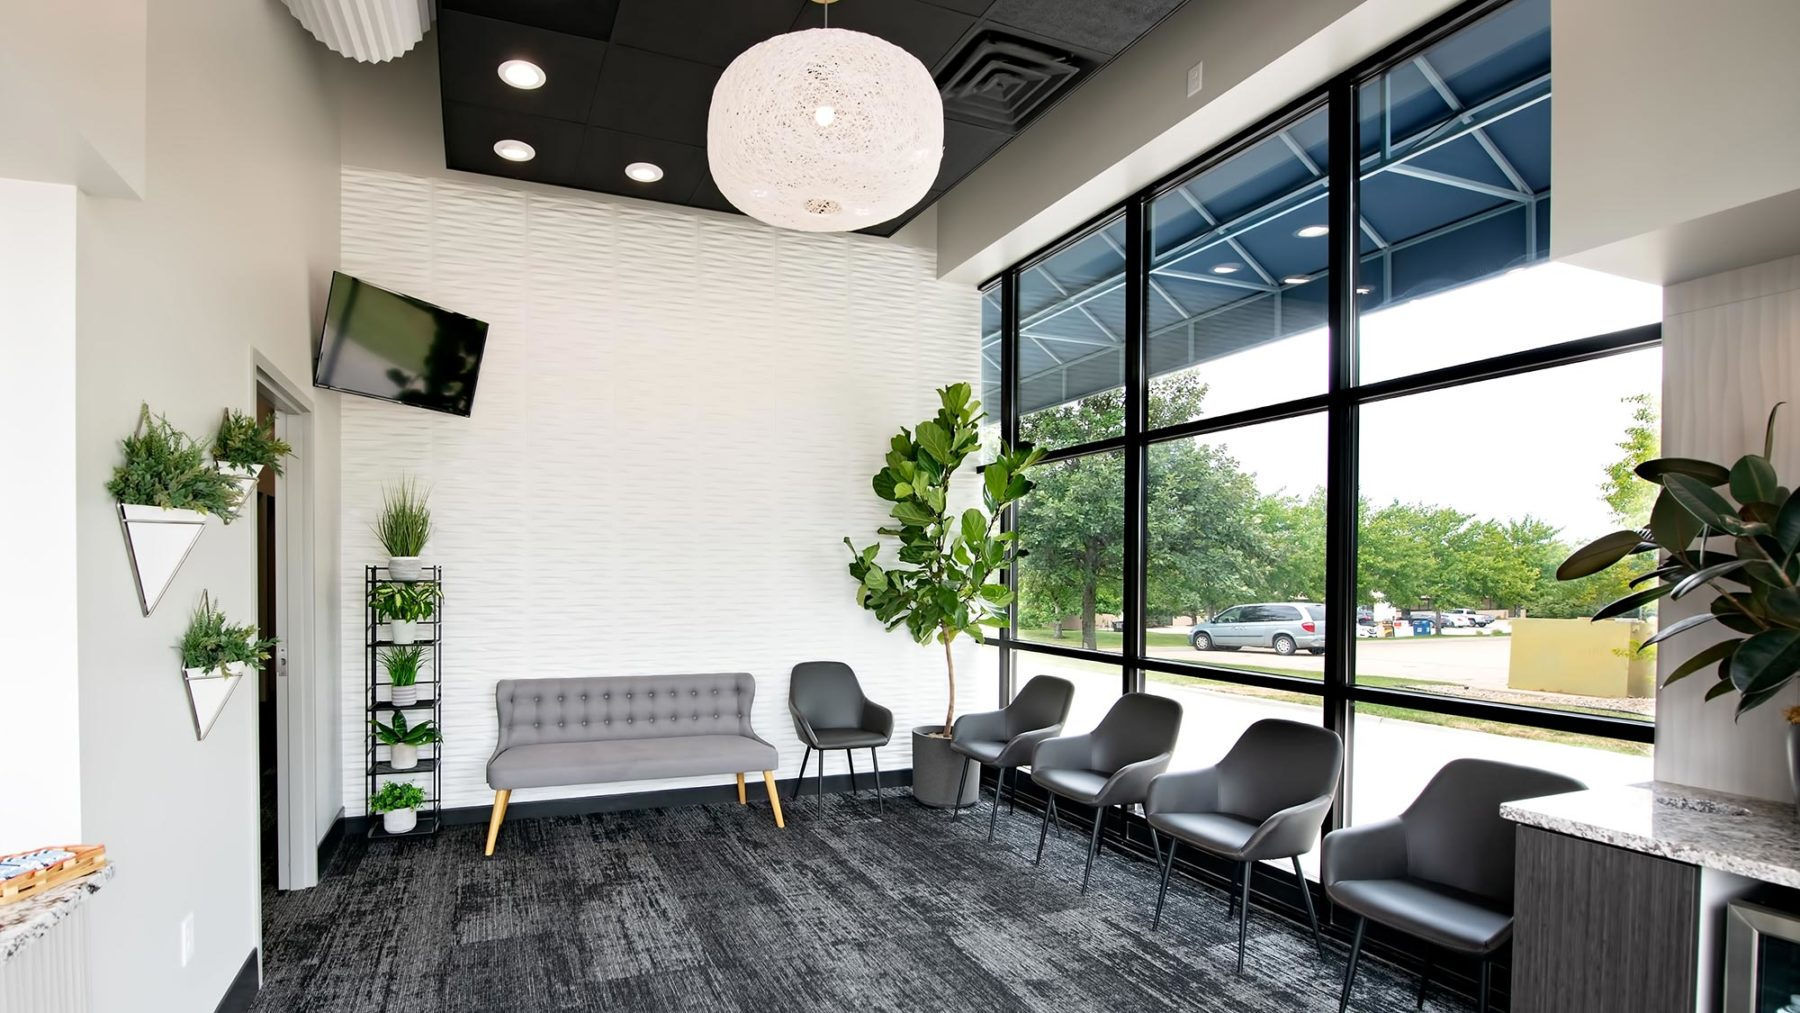 The lobby of Capital Dental in Lincoln, Nebraska